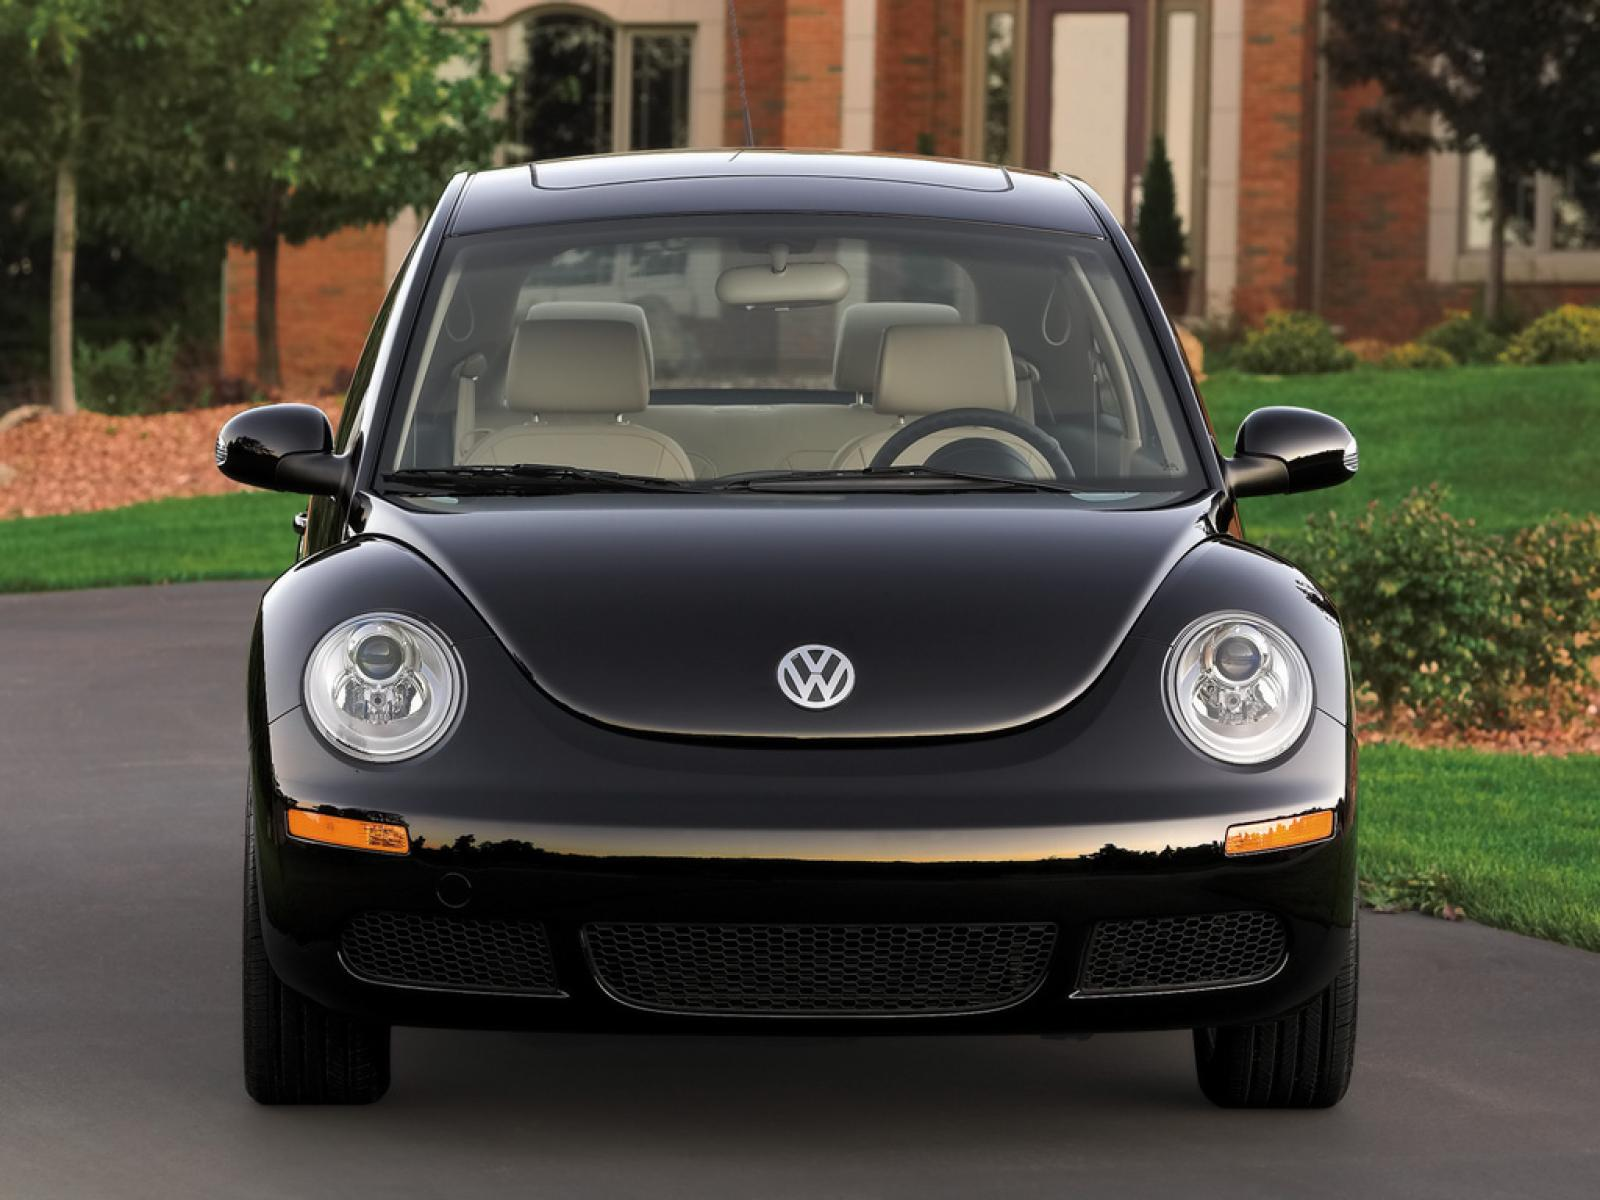 2000 Volkswagen New Beetle Owners Manual